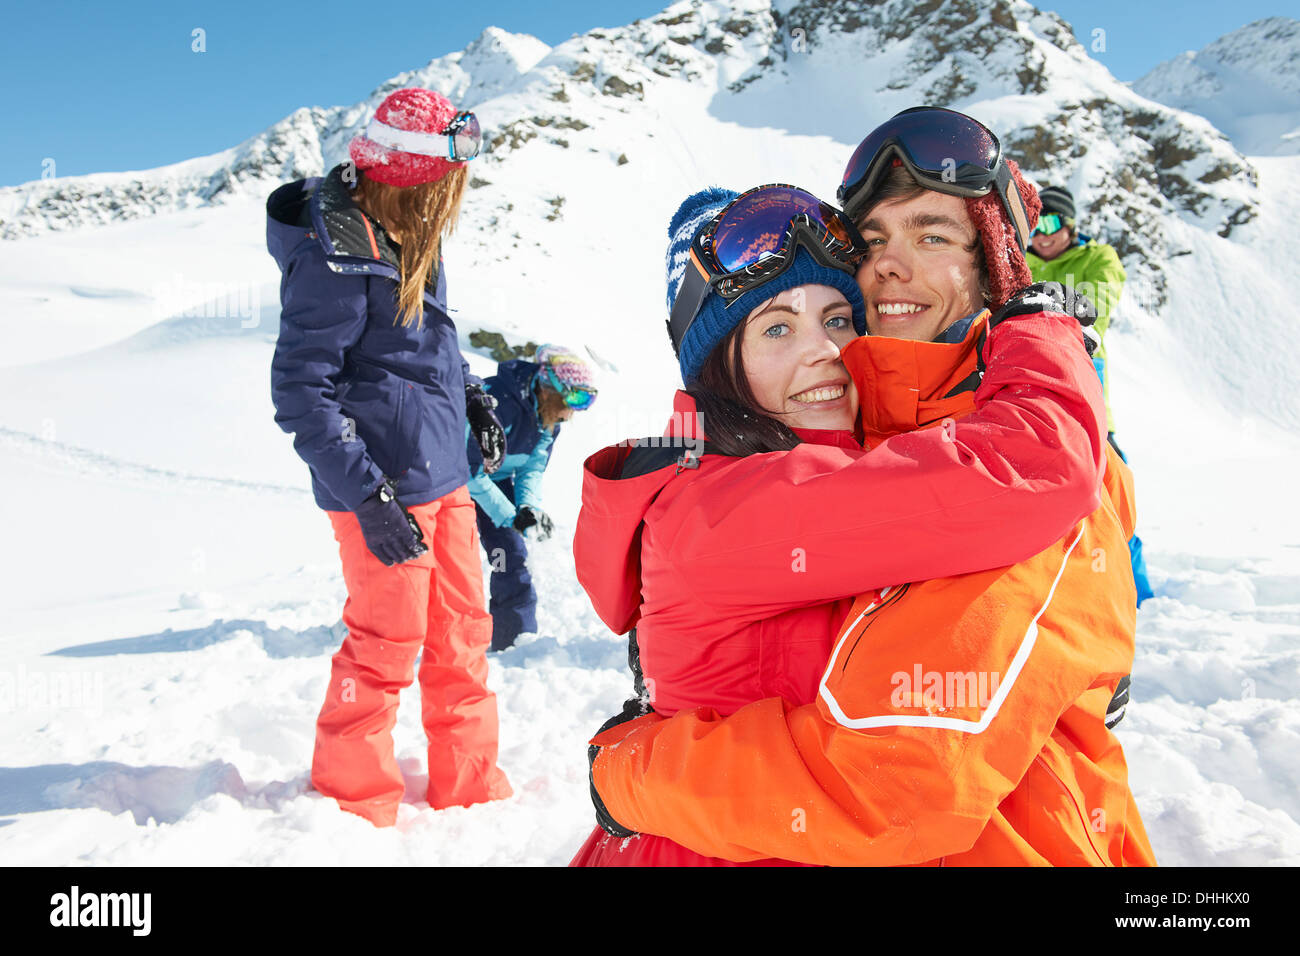 Friends wearing skiwear hugging, Kuhtai, Austria - Stock Image